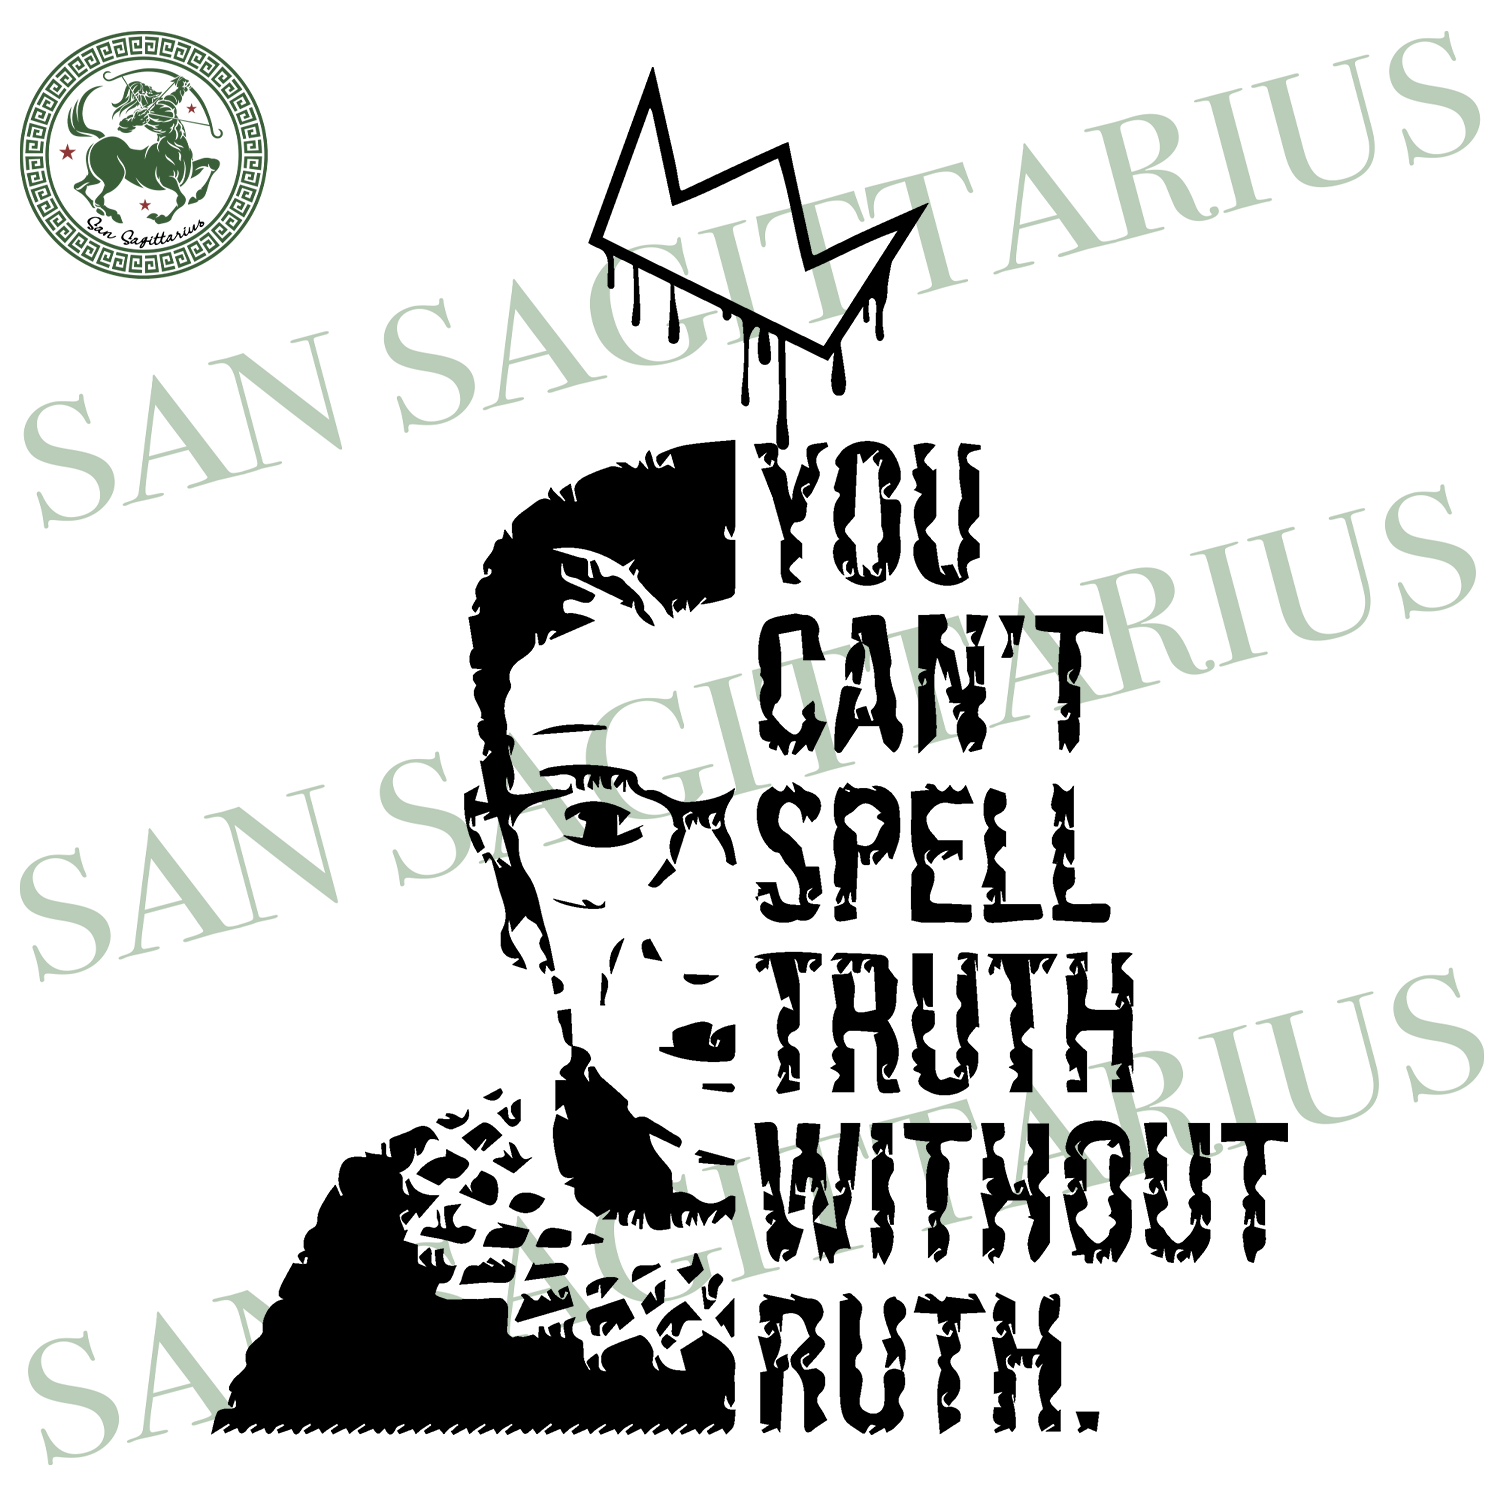 You Can't Spell Truth Without Ruth, Trending, Ruth Bader Ginsburg, Judge, Ruth Bader Ginsburg Shirts, Low Price, Ruth Bader Ginsburg Gifts, Ferminist Shirts, Ruth Bader Ginsburg Judge, Cour